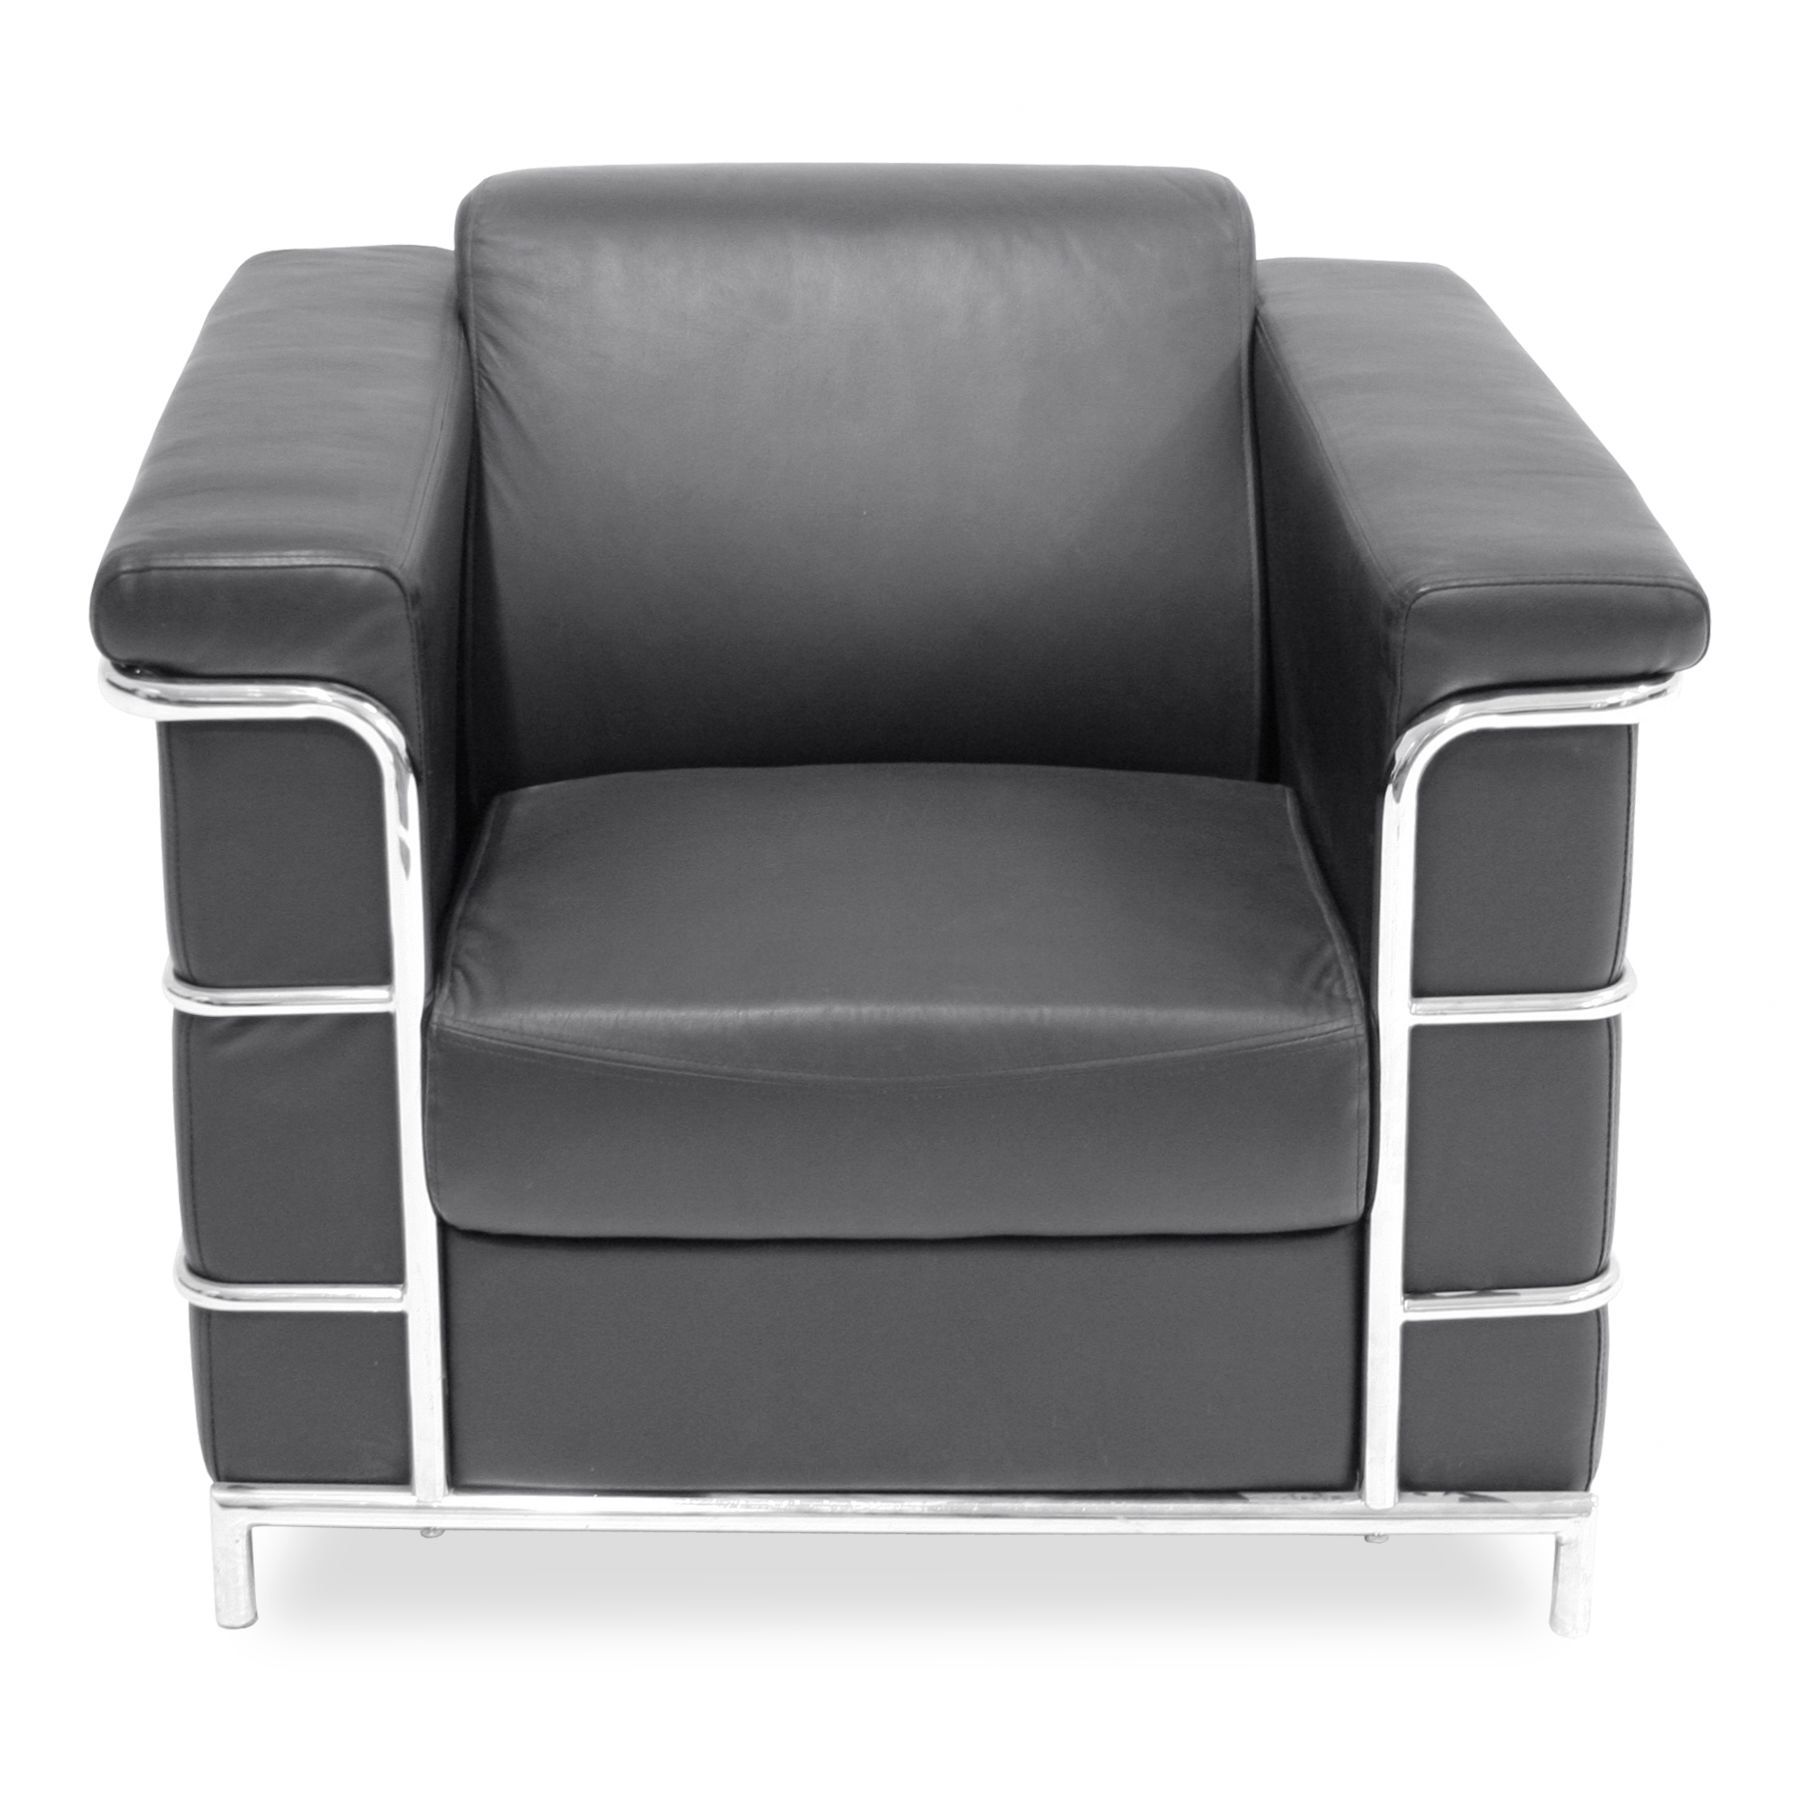 Cambridge Lounge Chair | Chair, Office furniture modern